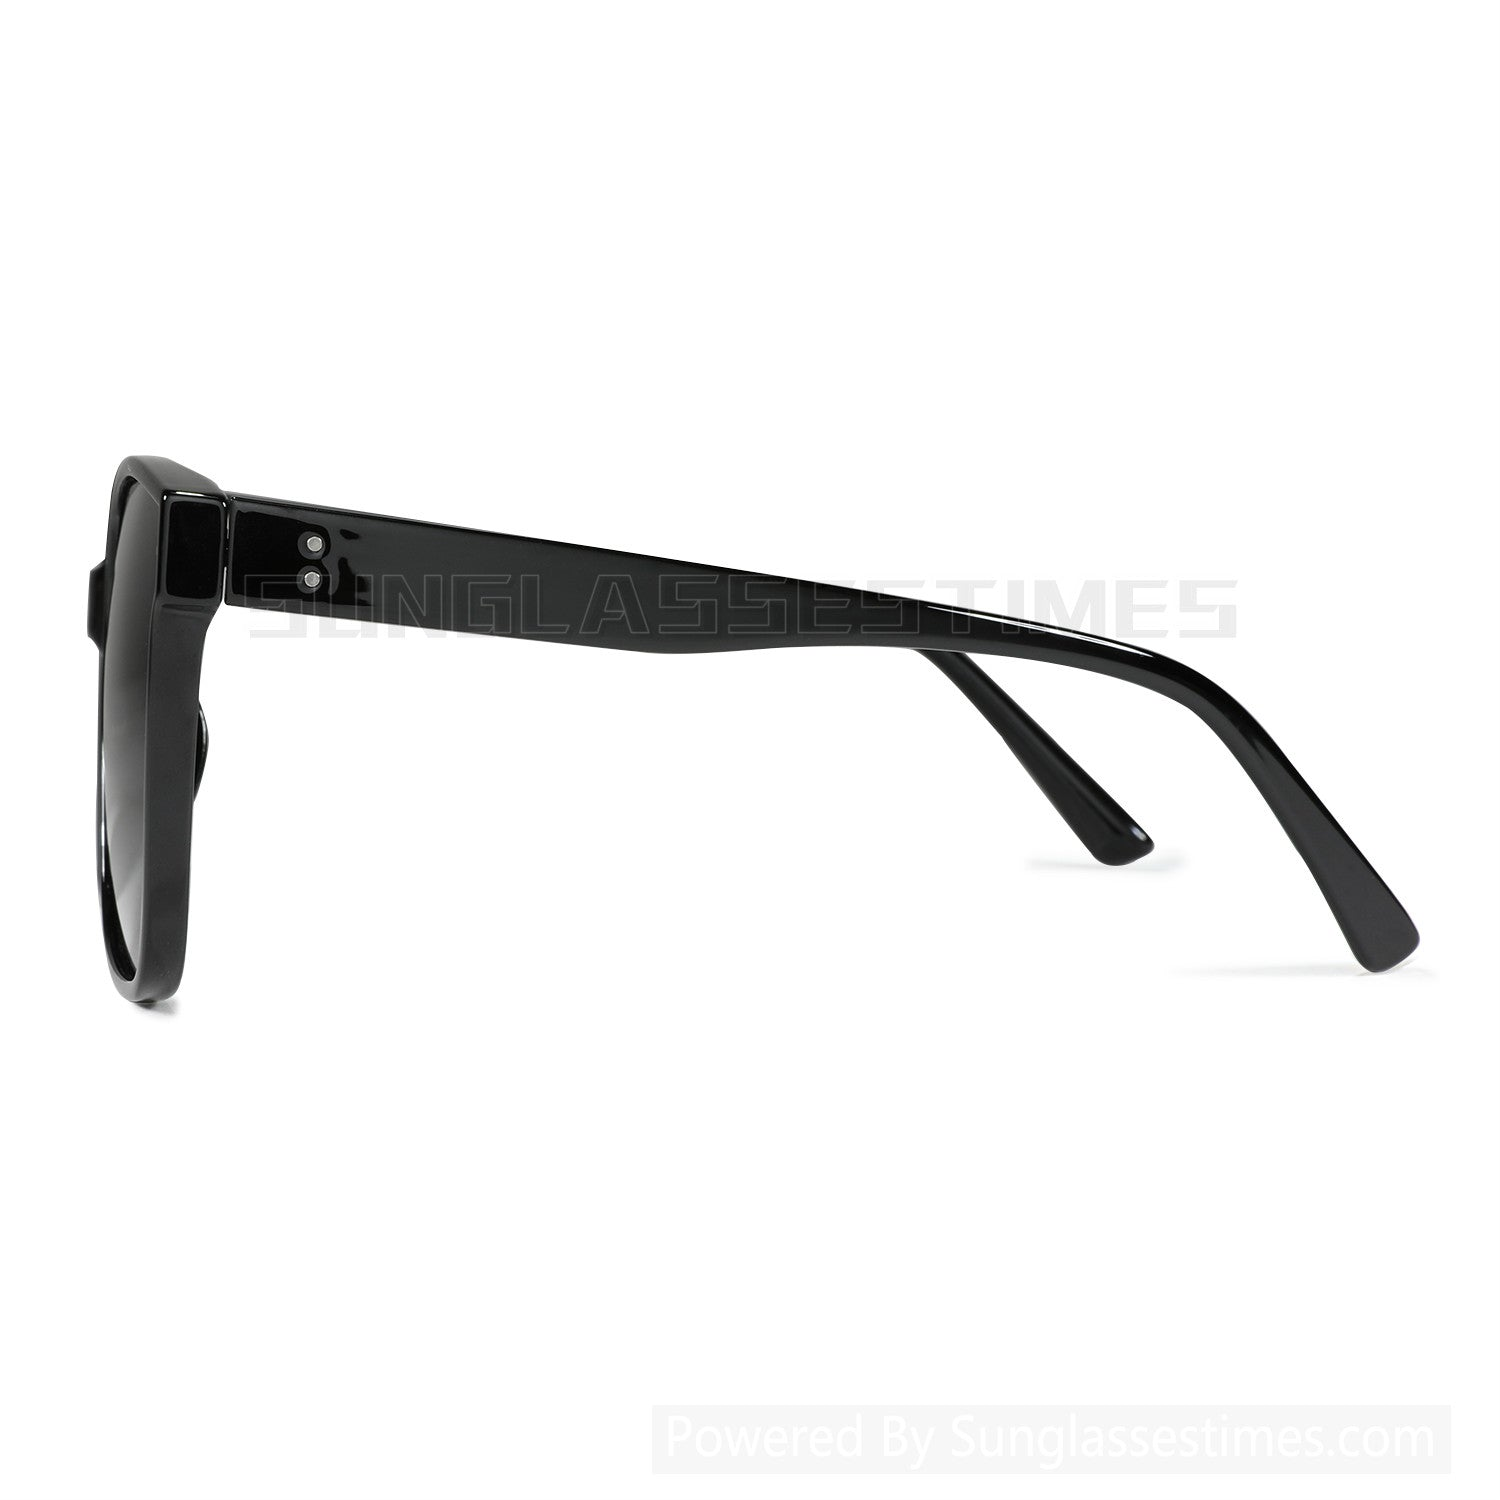 Polarized Sunglasses TAC Lens with Case